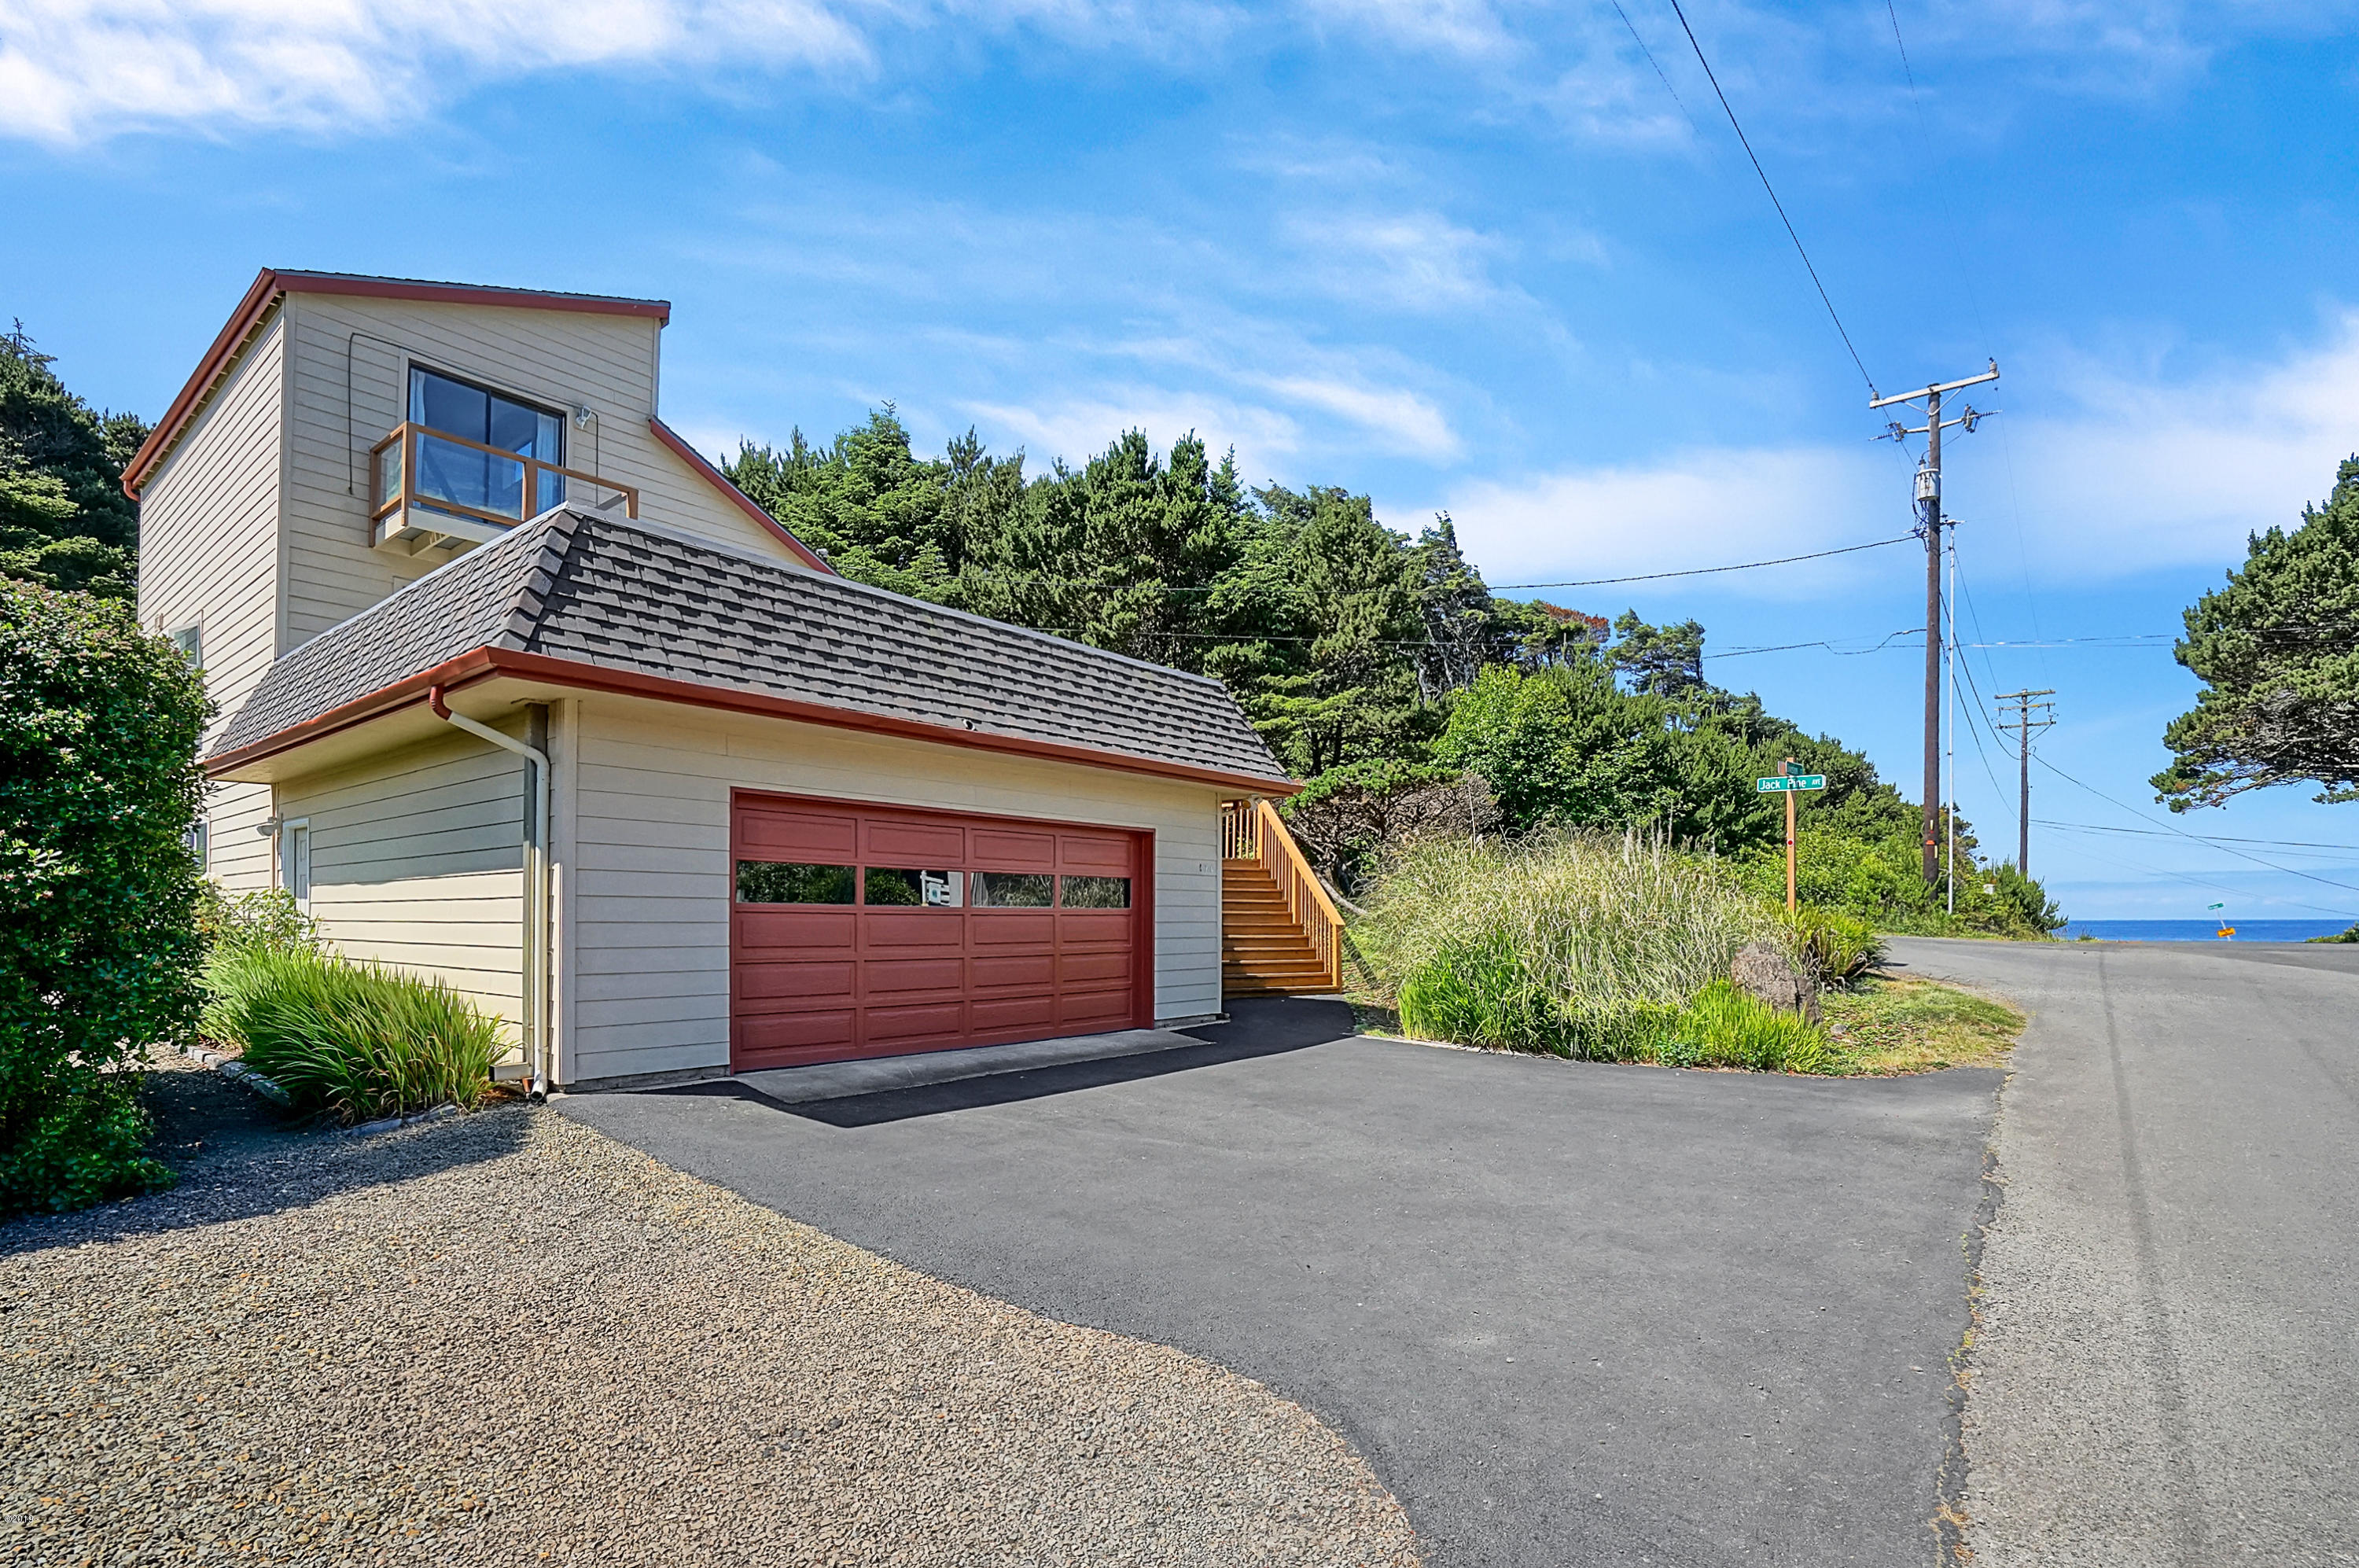 170 Division St, Depoe Bay, OR 97341